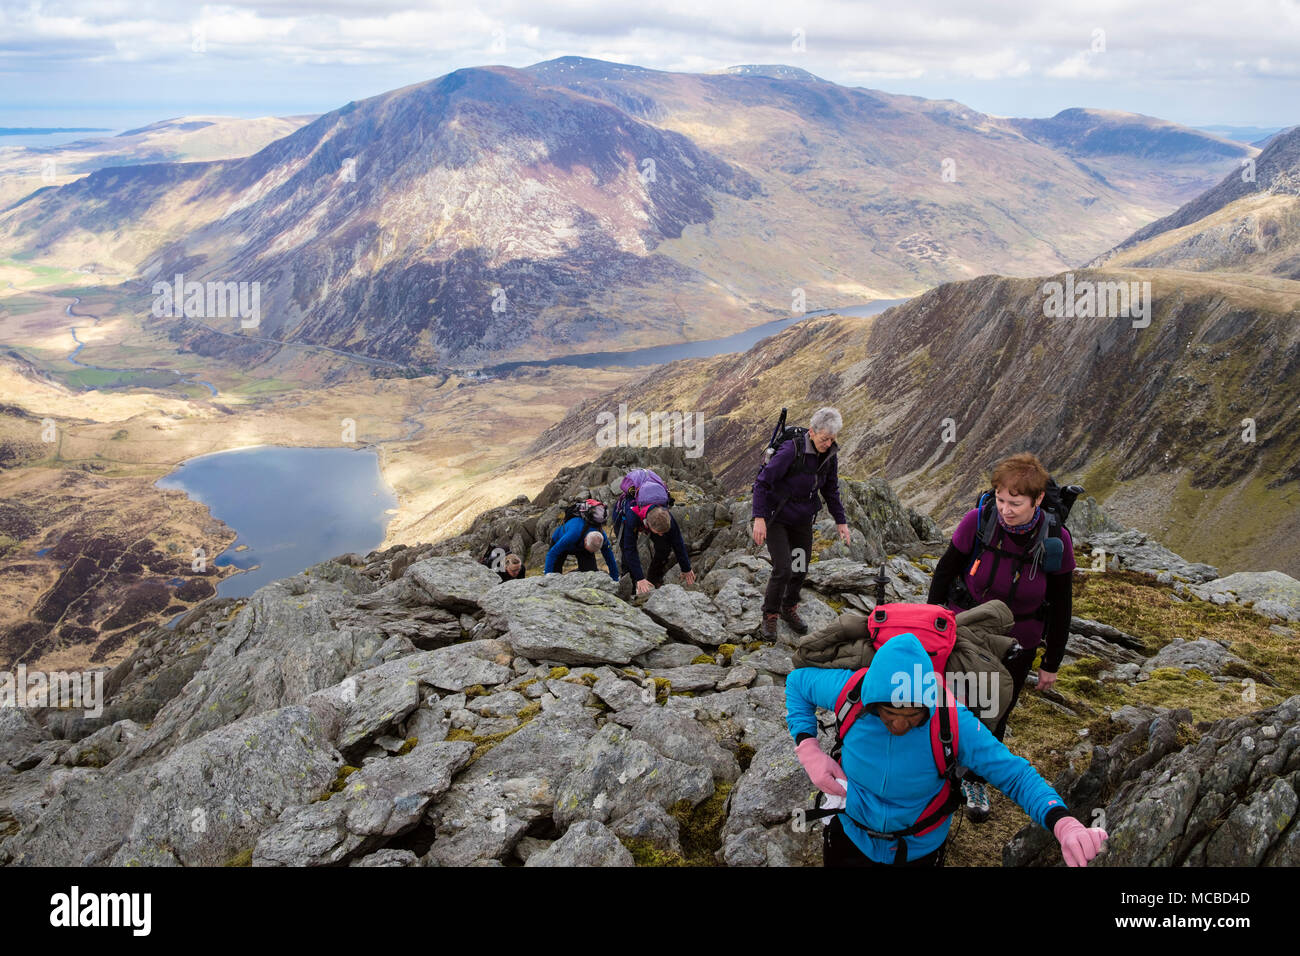 Hikers scrambling up on Seniors Ridge above Cwm Idwal and Ogwen valley with view to Carneddau mountains in Snowdonia National Park. Wales UK Britain - Stock Image